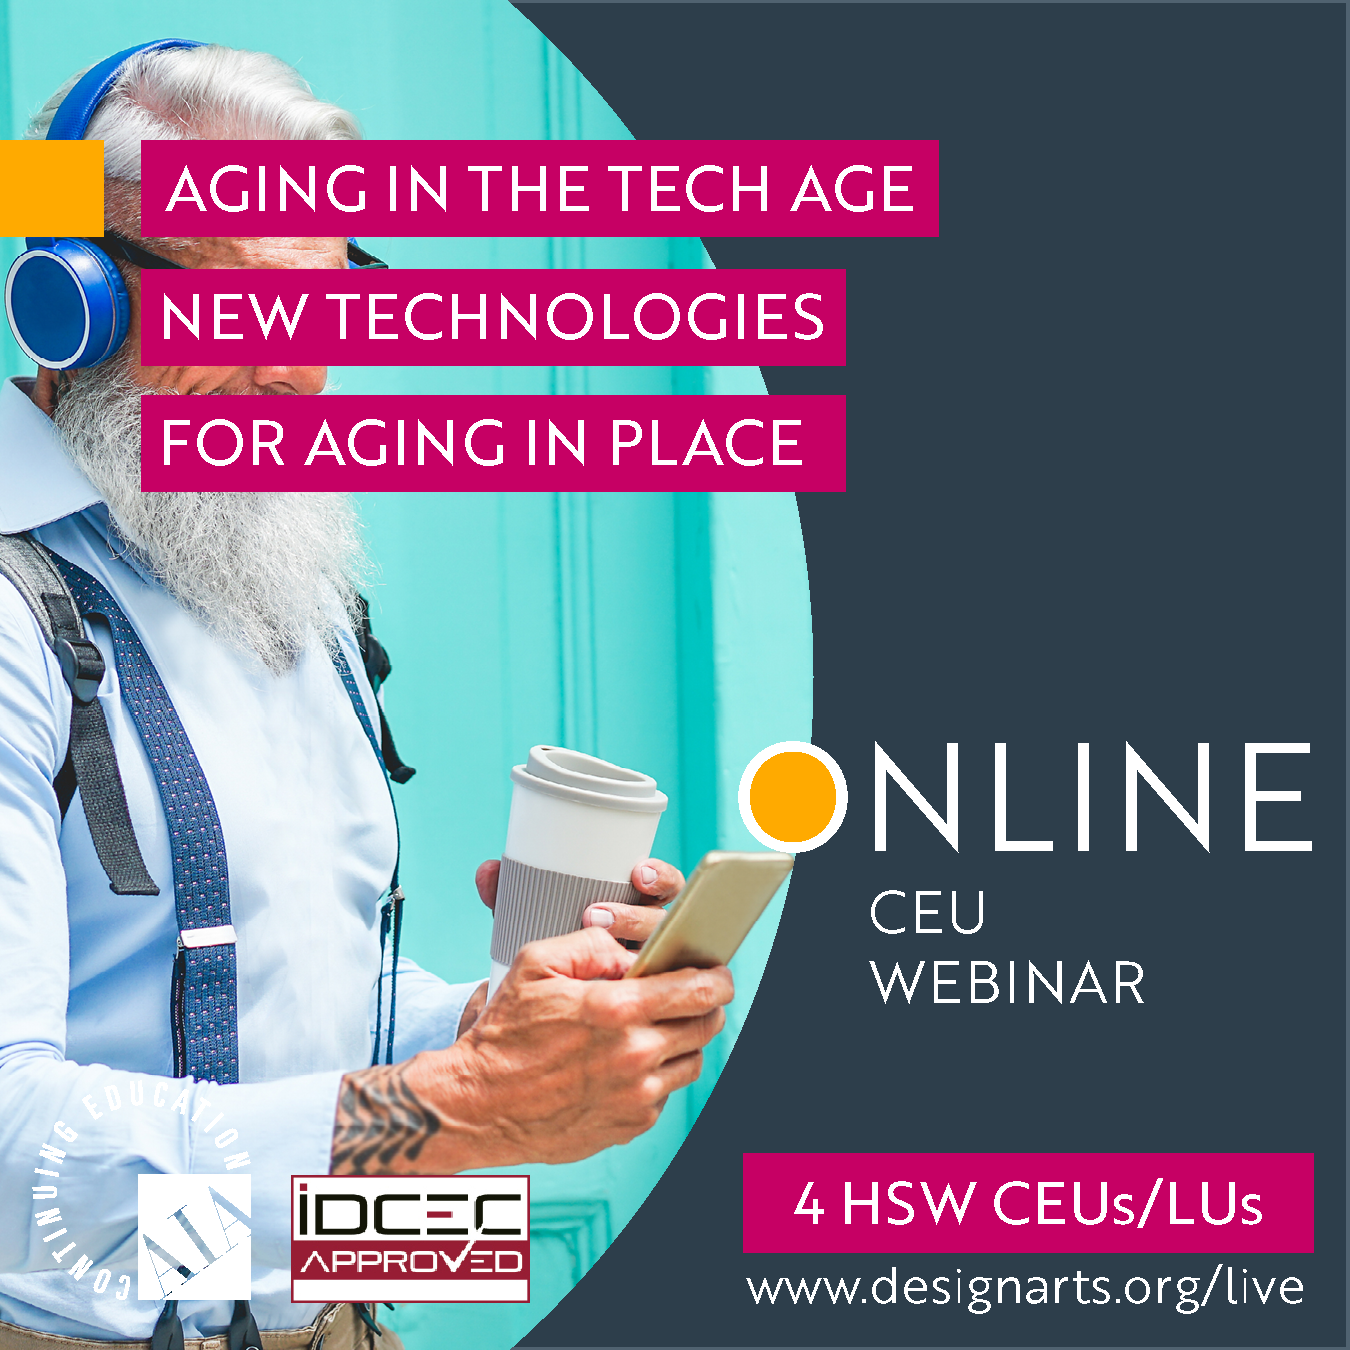 CEU: AGING IN THE TECH AGE